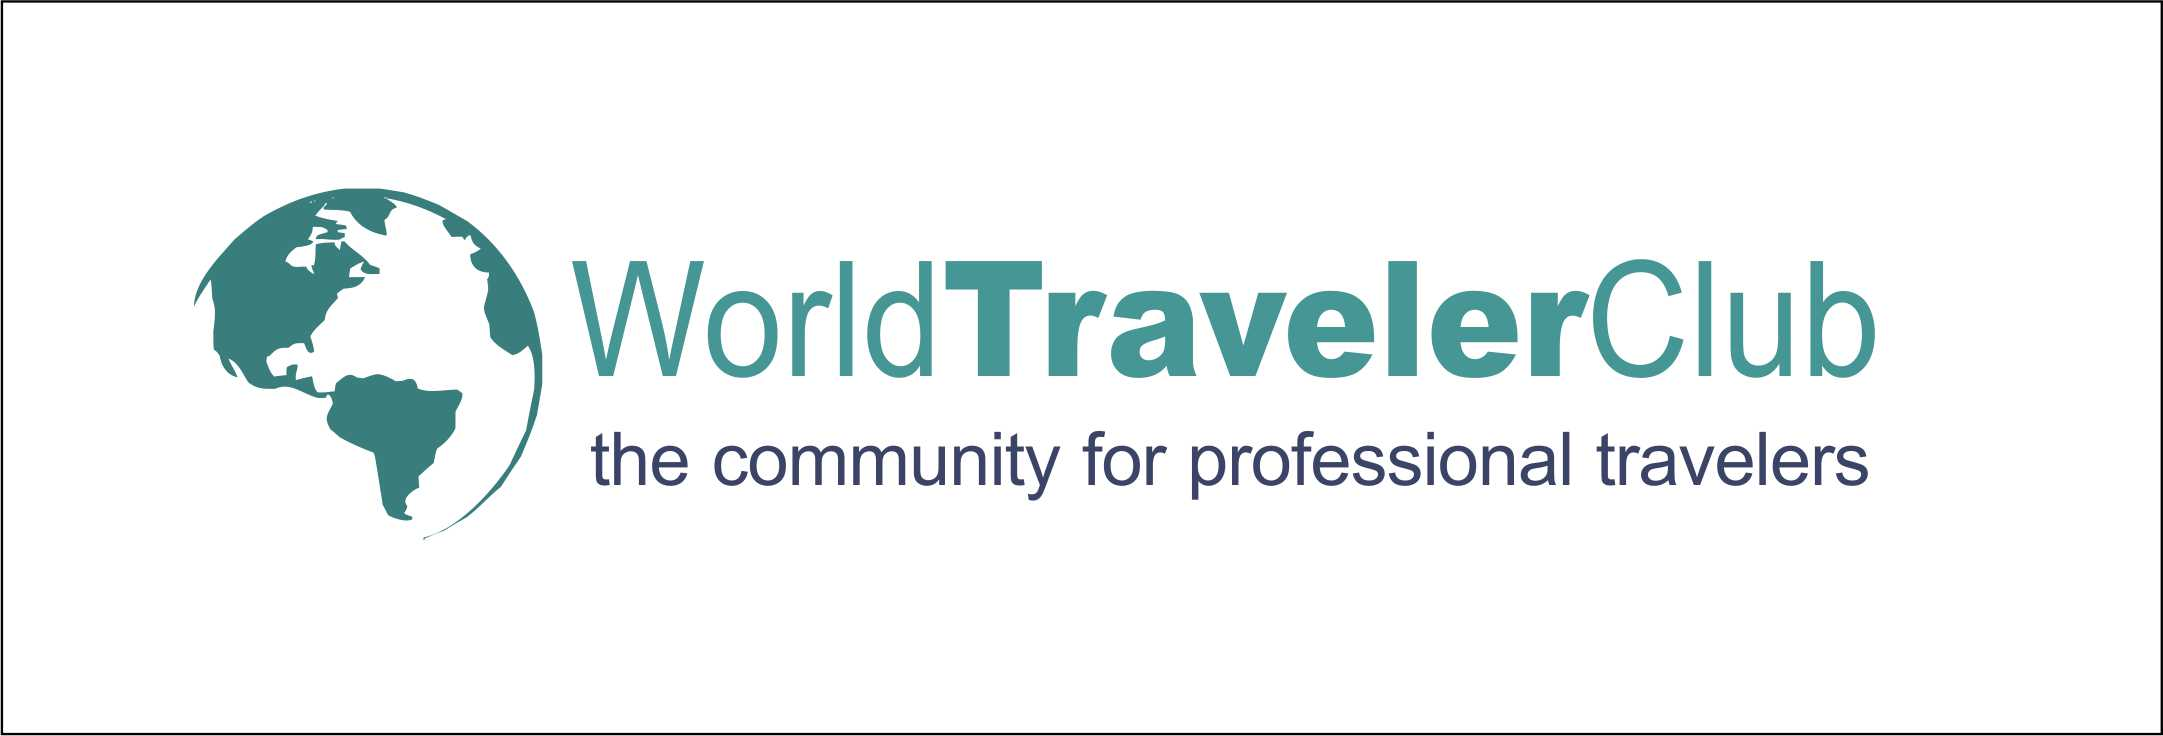 World Traveler Club - the Travel Community